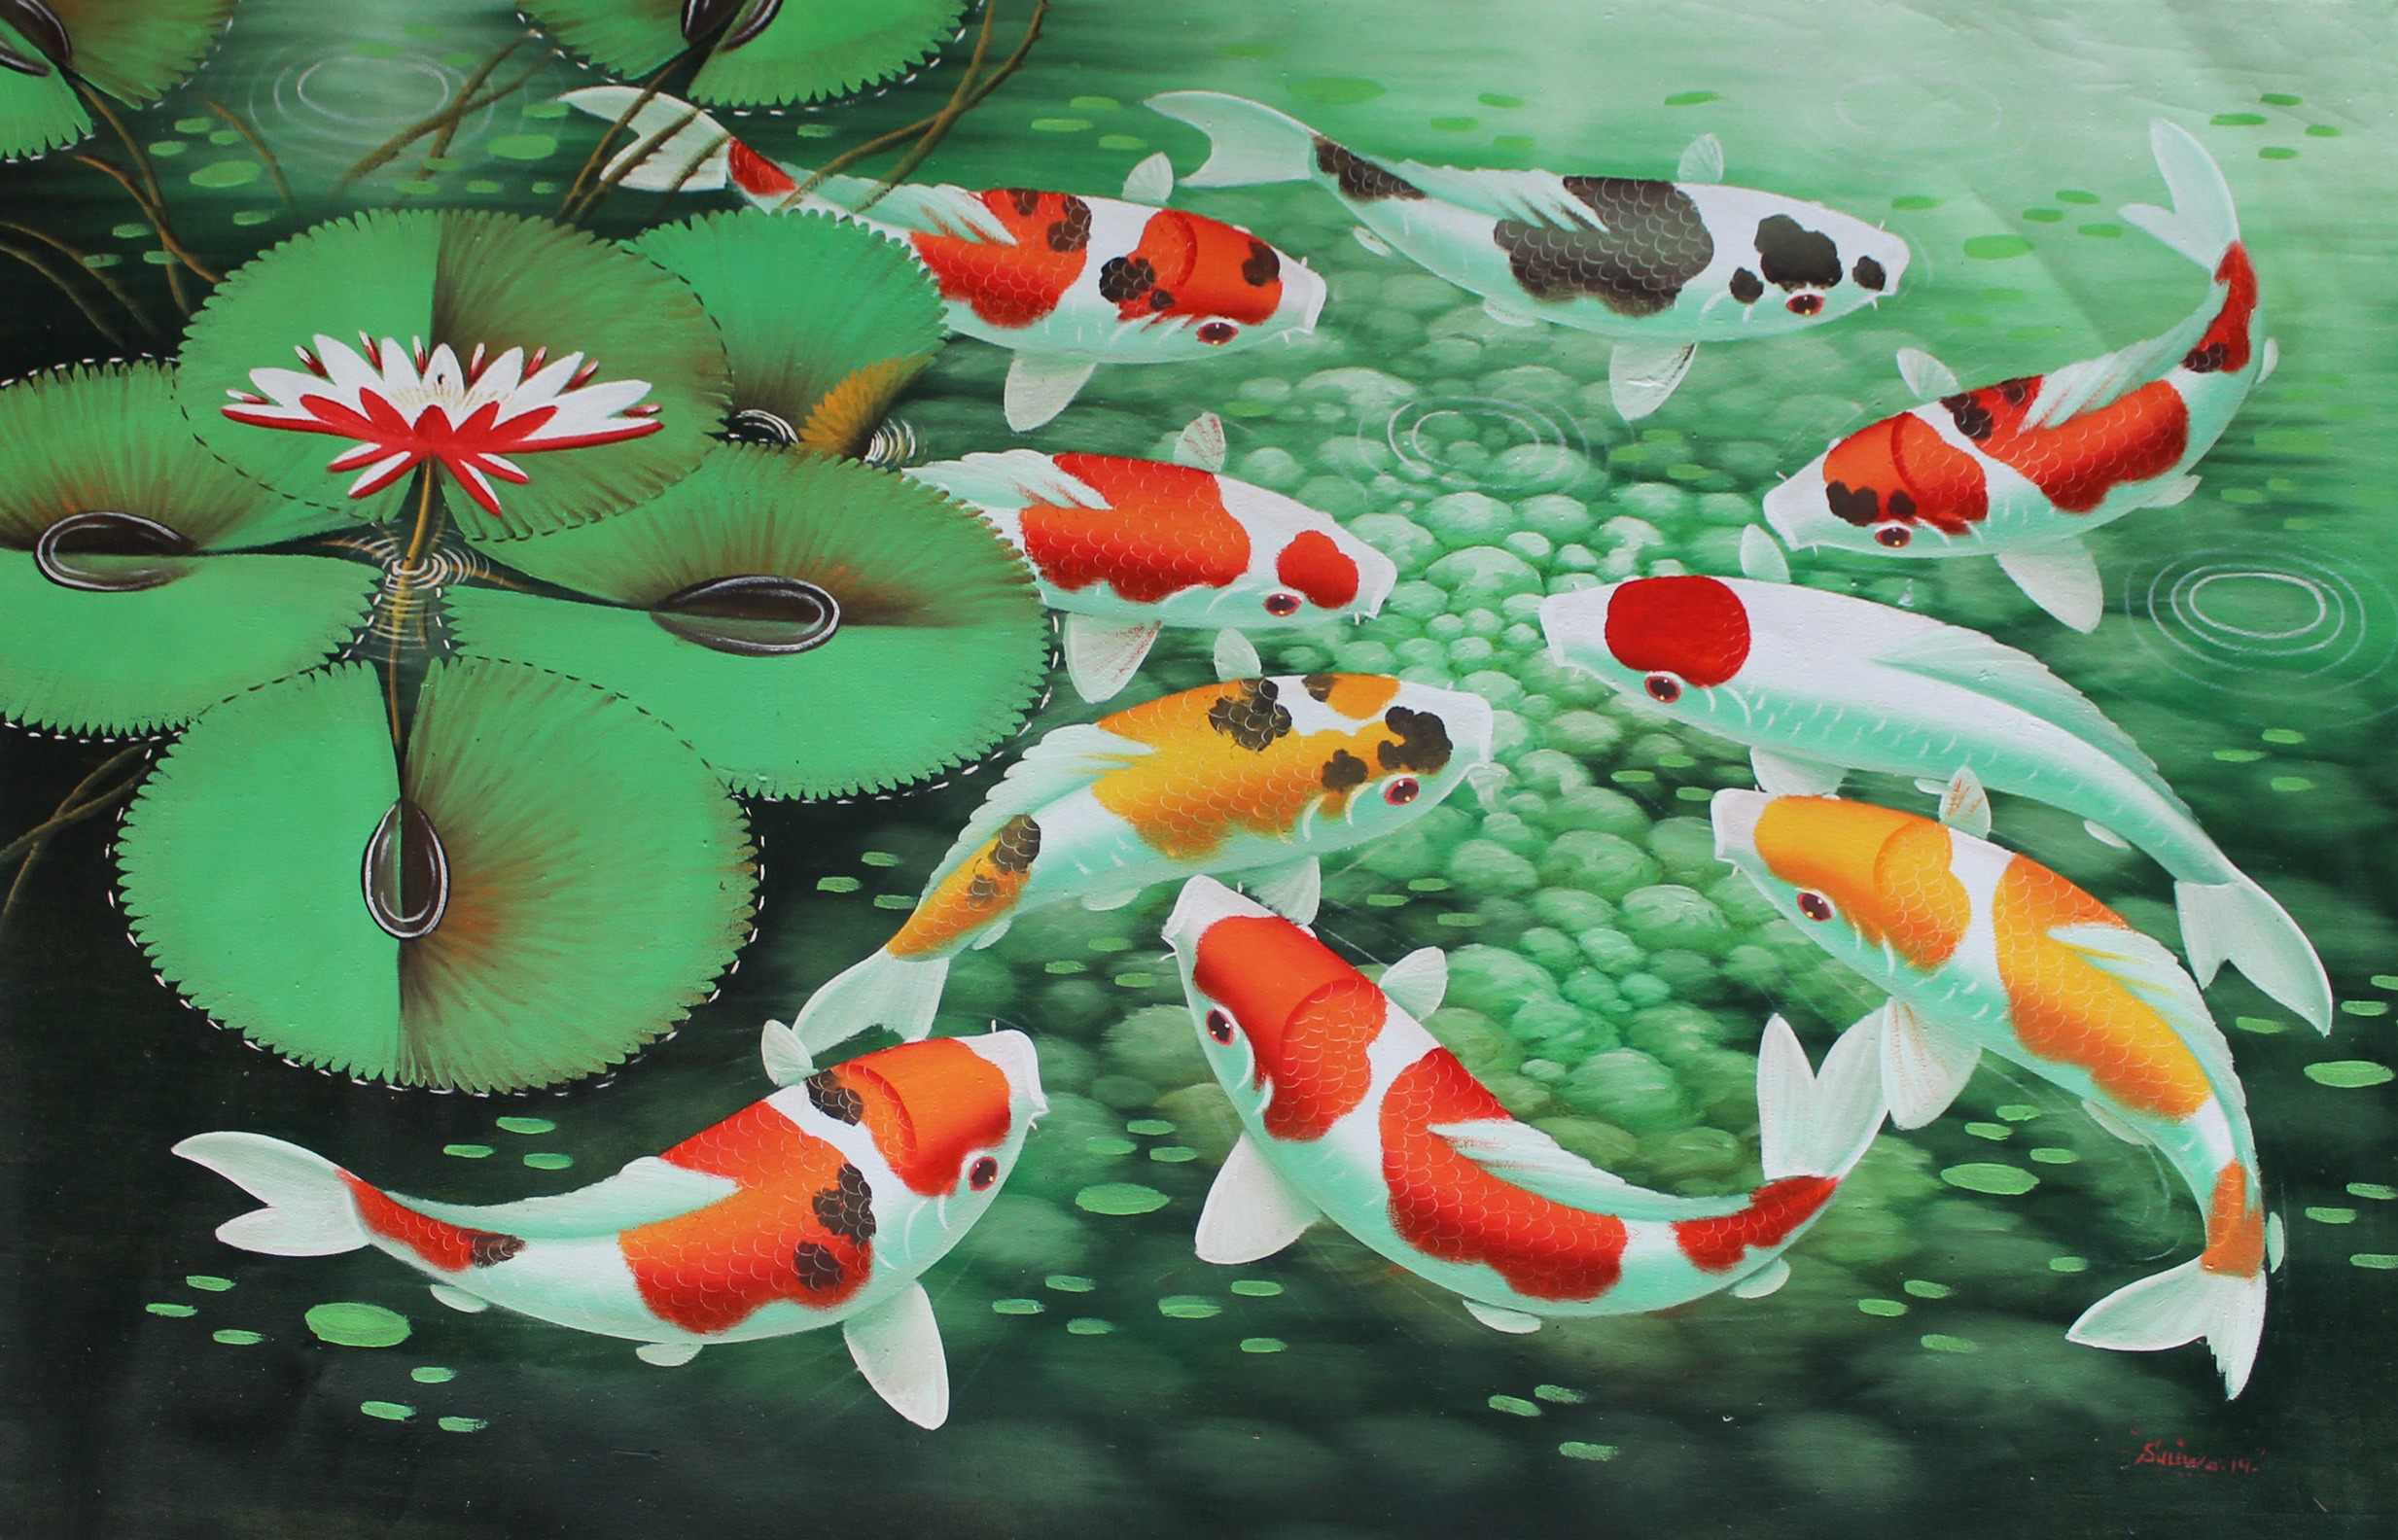 Koi live wallpaper for pc 41 images - 3d koi pond live wallpaper iphone ...